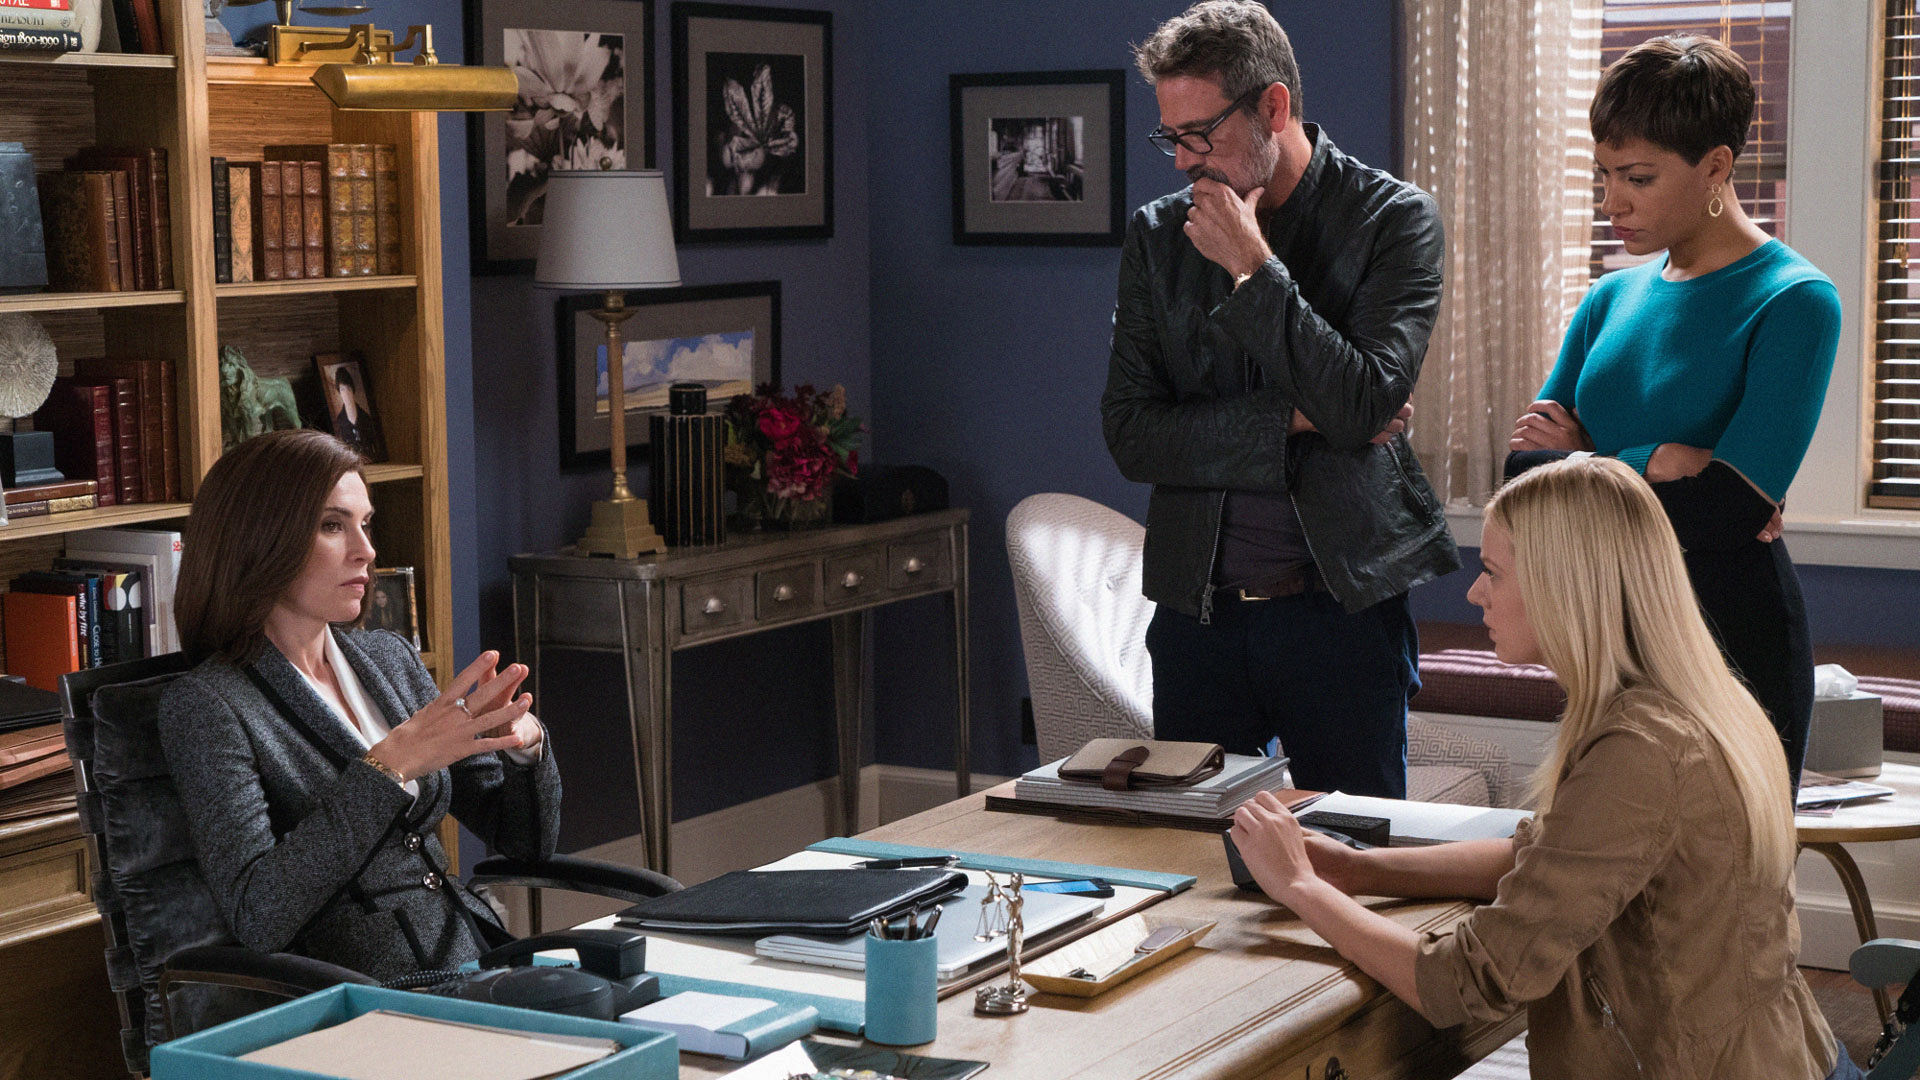 Julianna Margulies as Alicia Florrick, Jeffrey Dean Morgan as Jason Crouse, and Cush Jumbo as Lucca Quinn